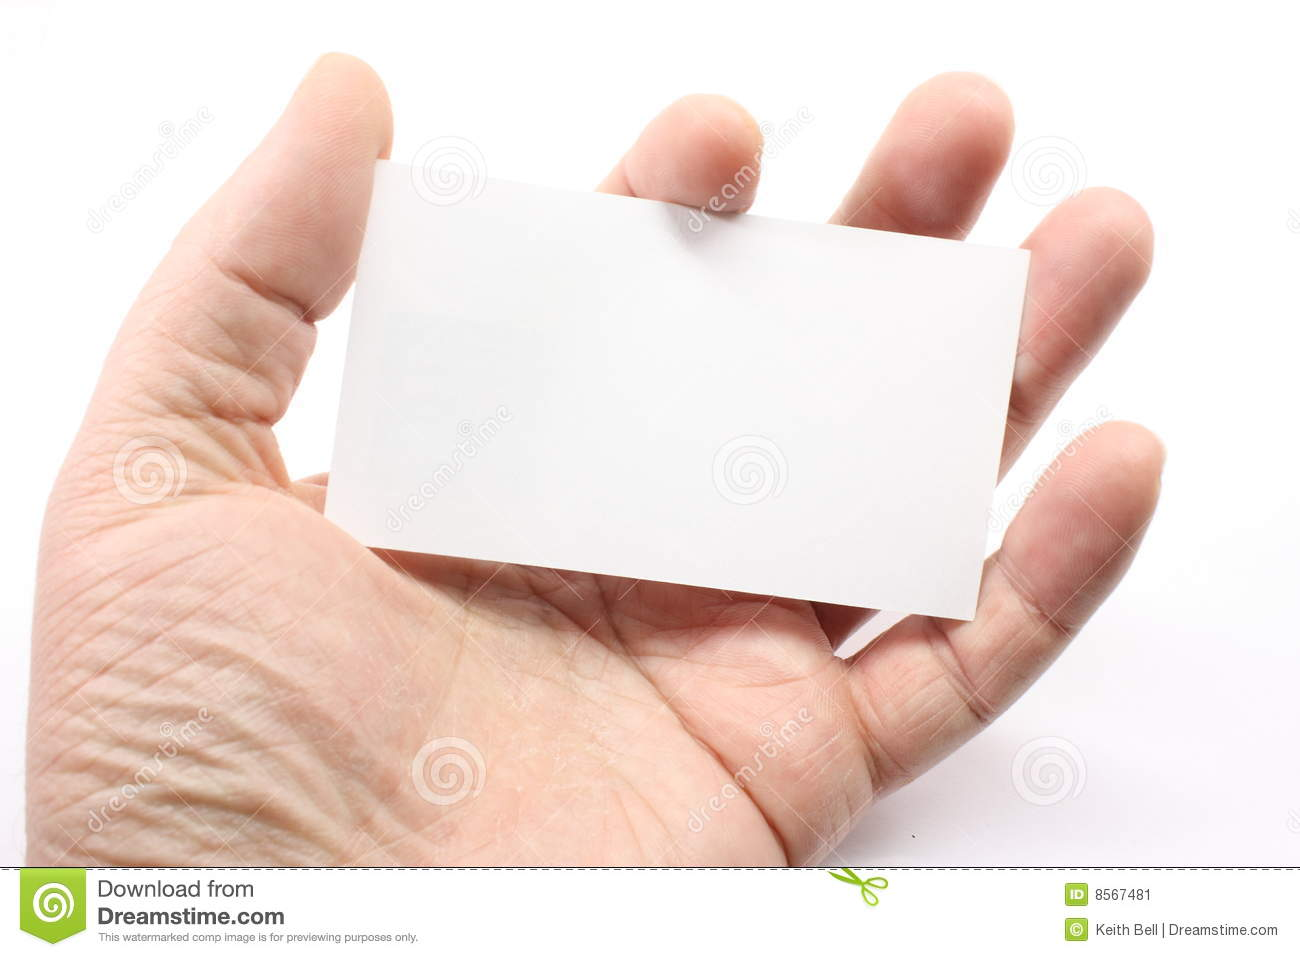 Blank Business Card In Palm Stock Image - Image: 8567481